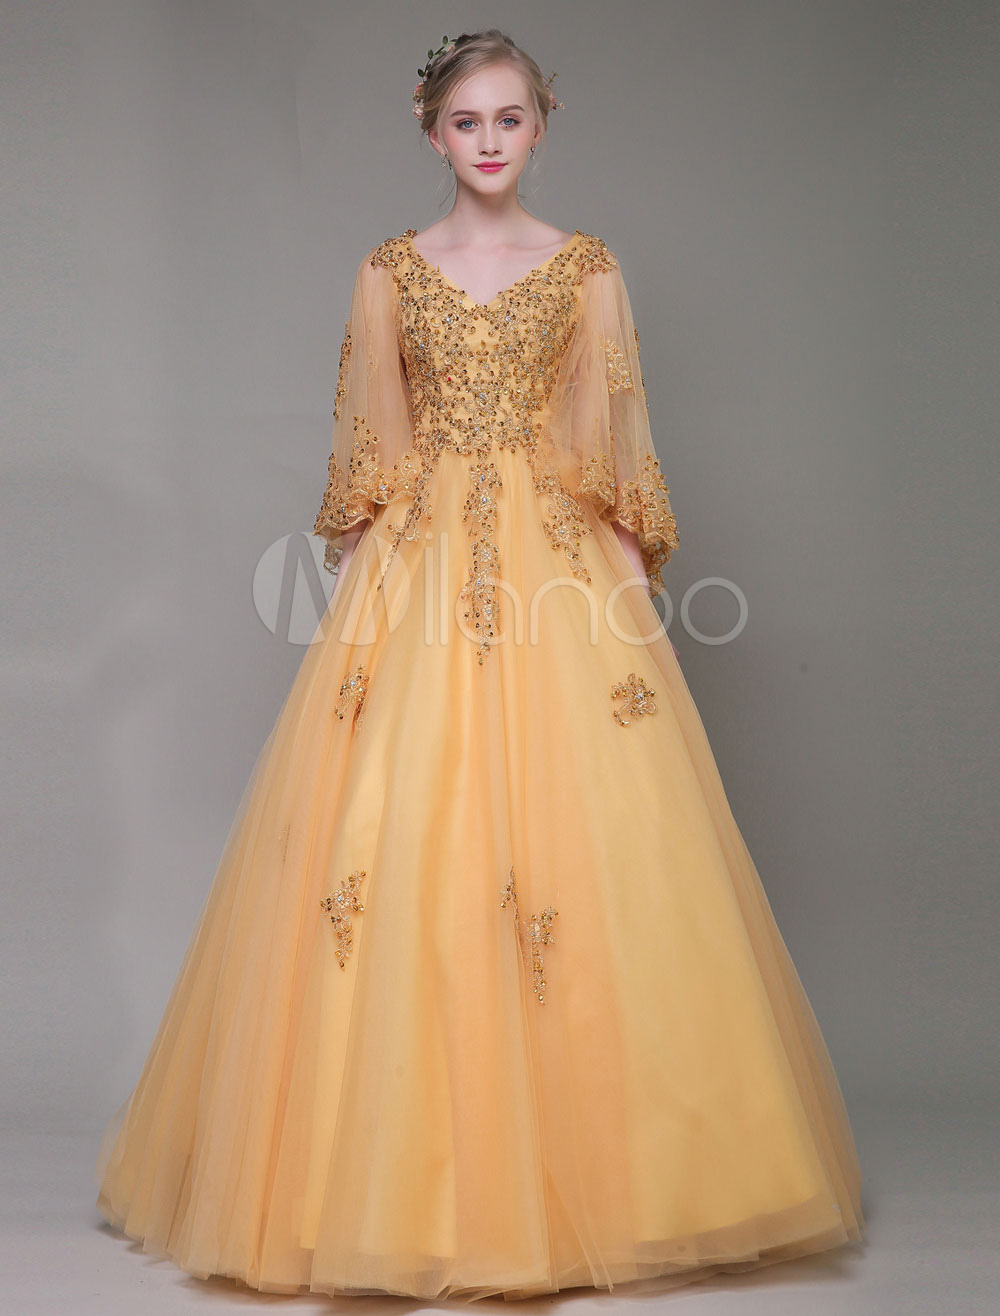 81eaa431ace Luxury Prom Dresses Light Gold Lace Applique Beaded V Neck Butterfly Sleeve  Tulle Floor Length Princess ...